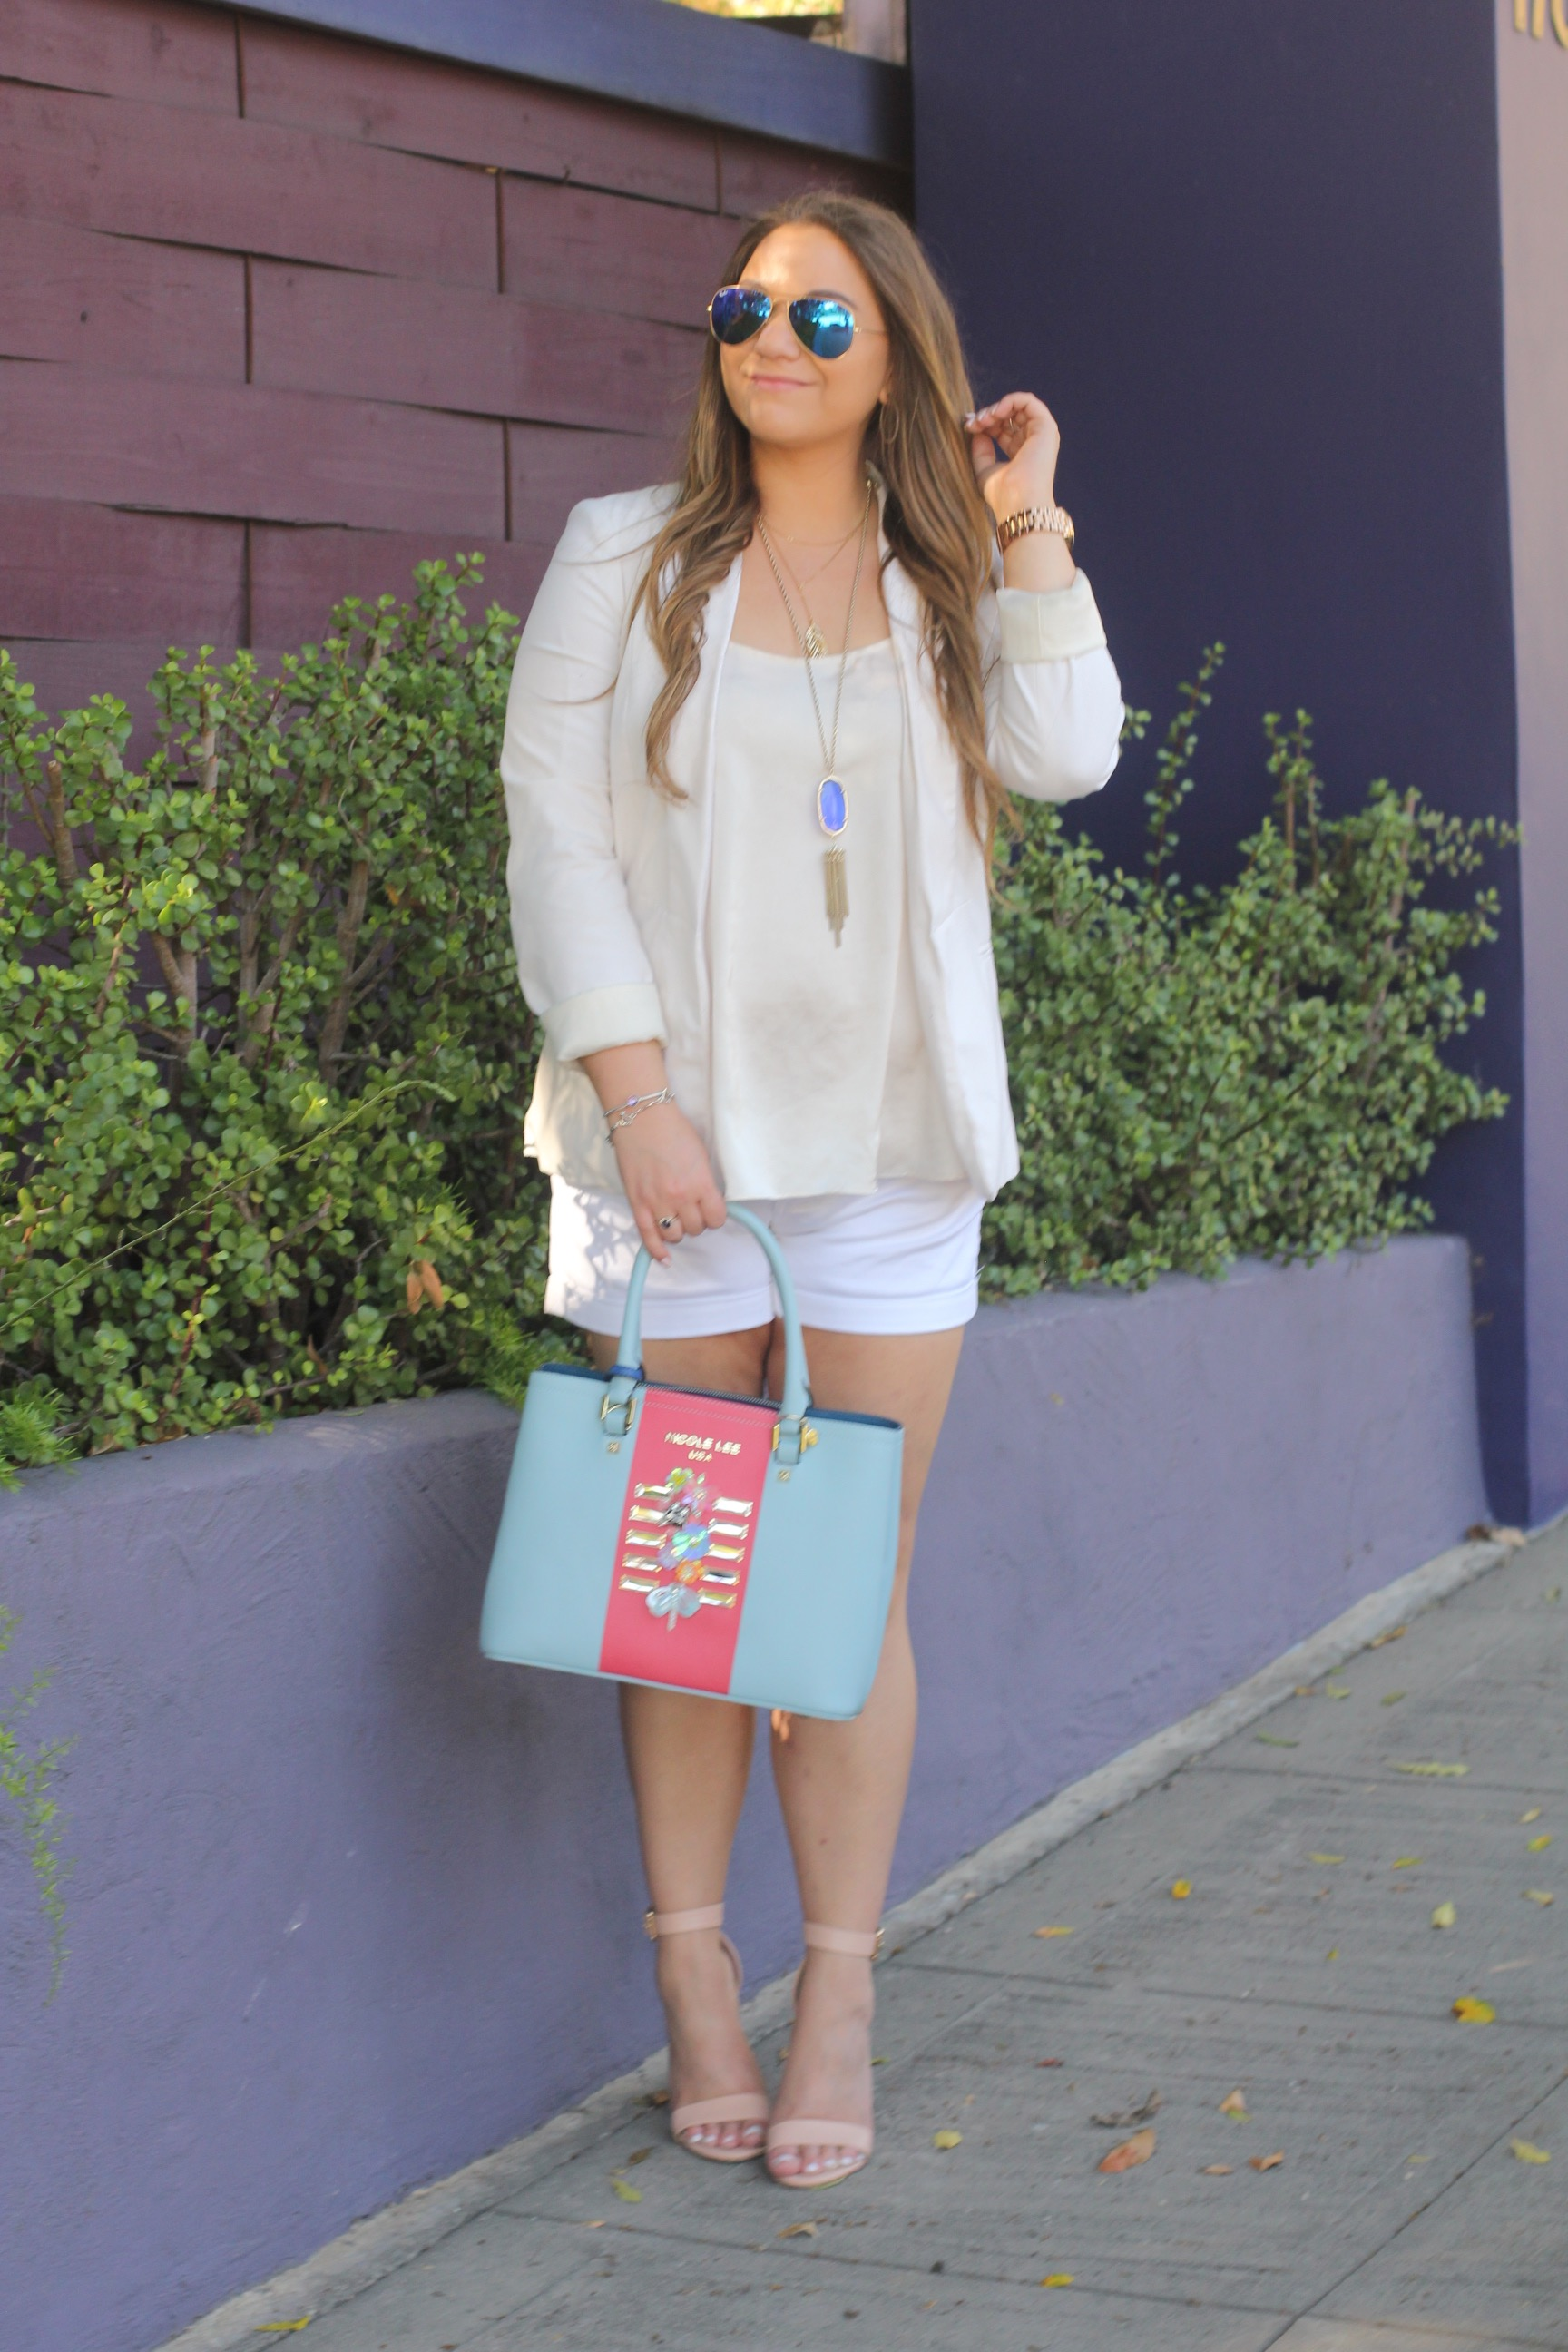 missyonmadison, spring style, melissa tierney, white boyfriend blazer, womens white boyfriend blazer, nicole lee usa, nicole lee usa tote, floral bag, floral satchel, baby blue leather tote, spring handbags, spring trends, nude ankle strap heels, nude ankle strap sandals, nude chunky heels, spring shoes, white chiffon camisole, topshop camisole, white cotton shorts, white shorts, white dress shorts, white suit, short suit, how to style shorts for spring, ray bans, blue mirrored aviators, kendra scott, blue kendra scott rayne necklace, michael kors blue watch, michael kors cobalt watch, la style, la blogger,